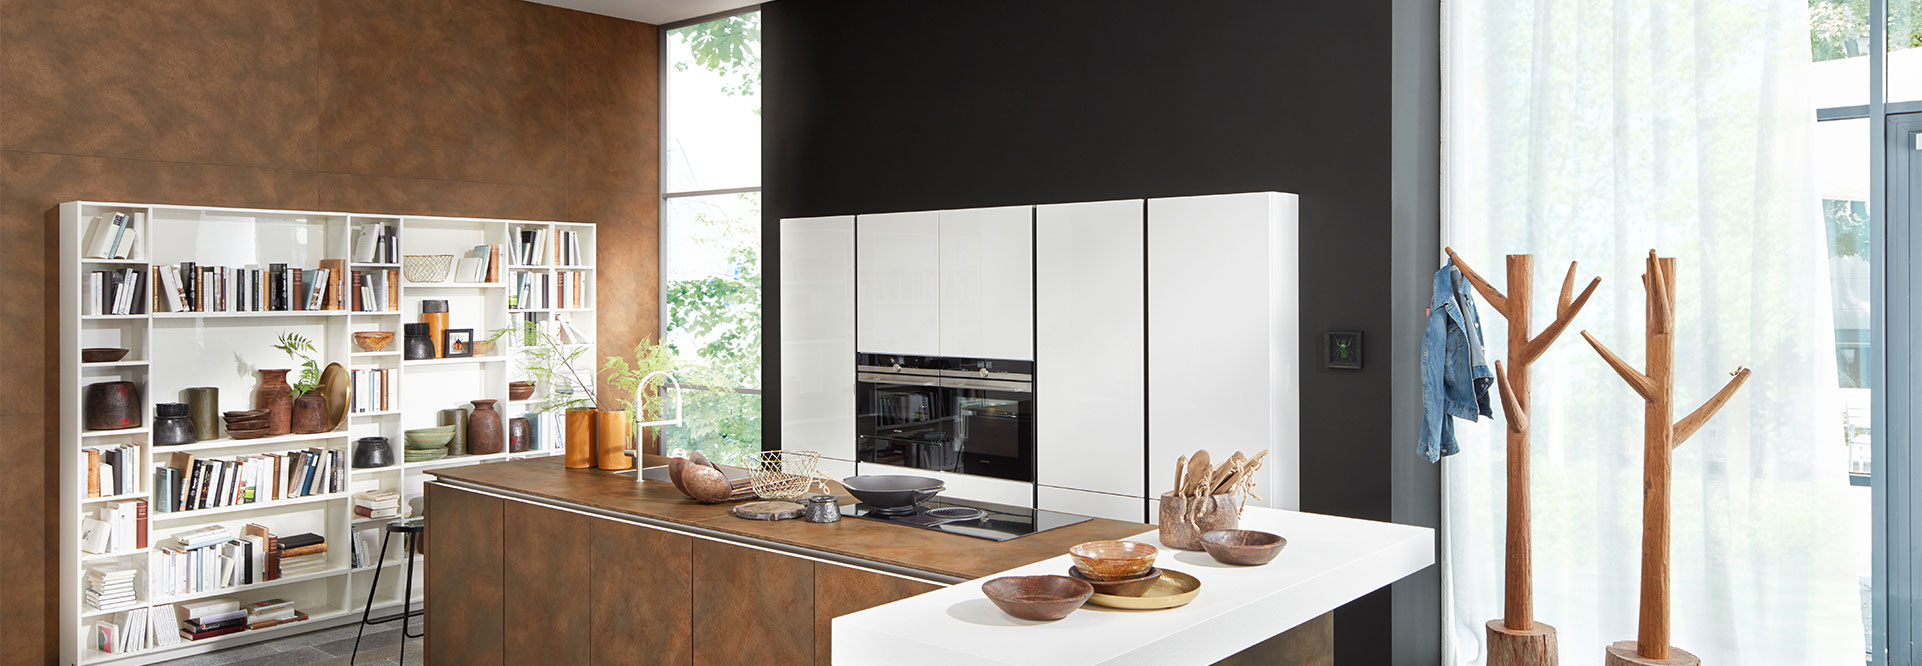 Modern Kitchens from Marks Electrical